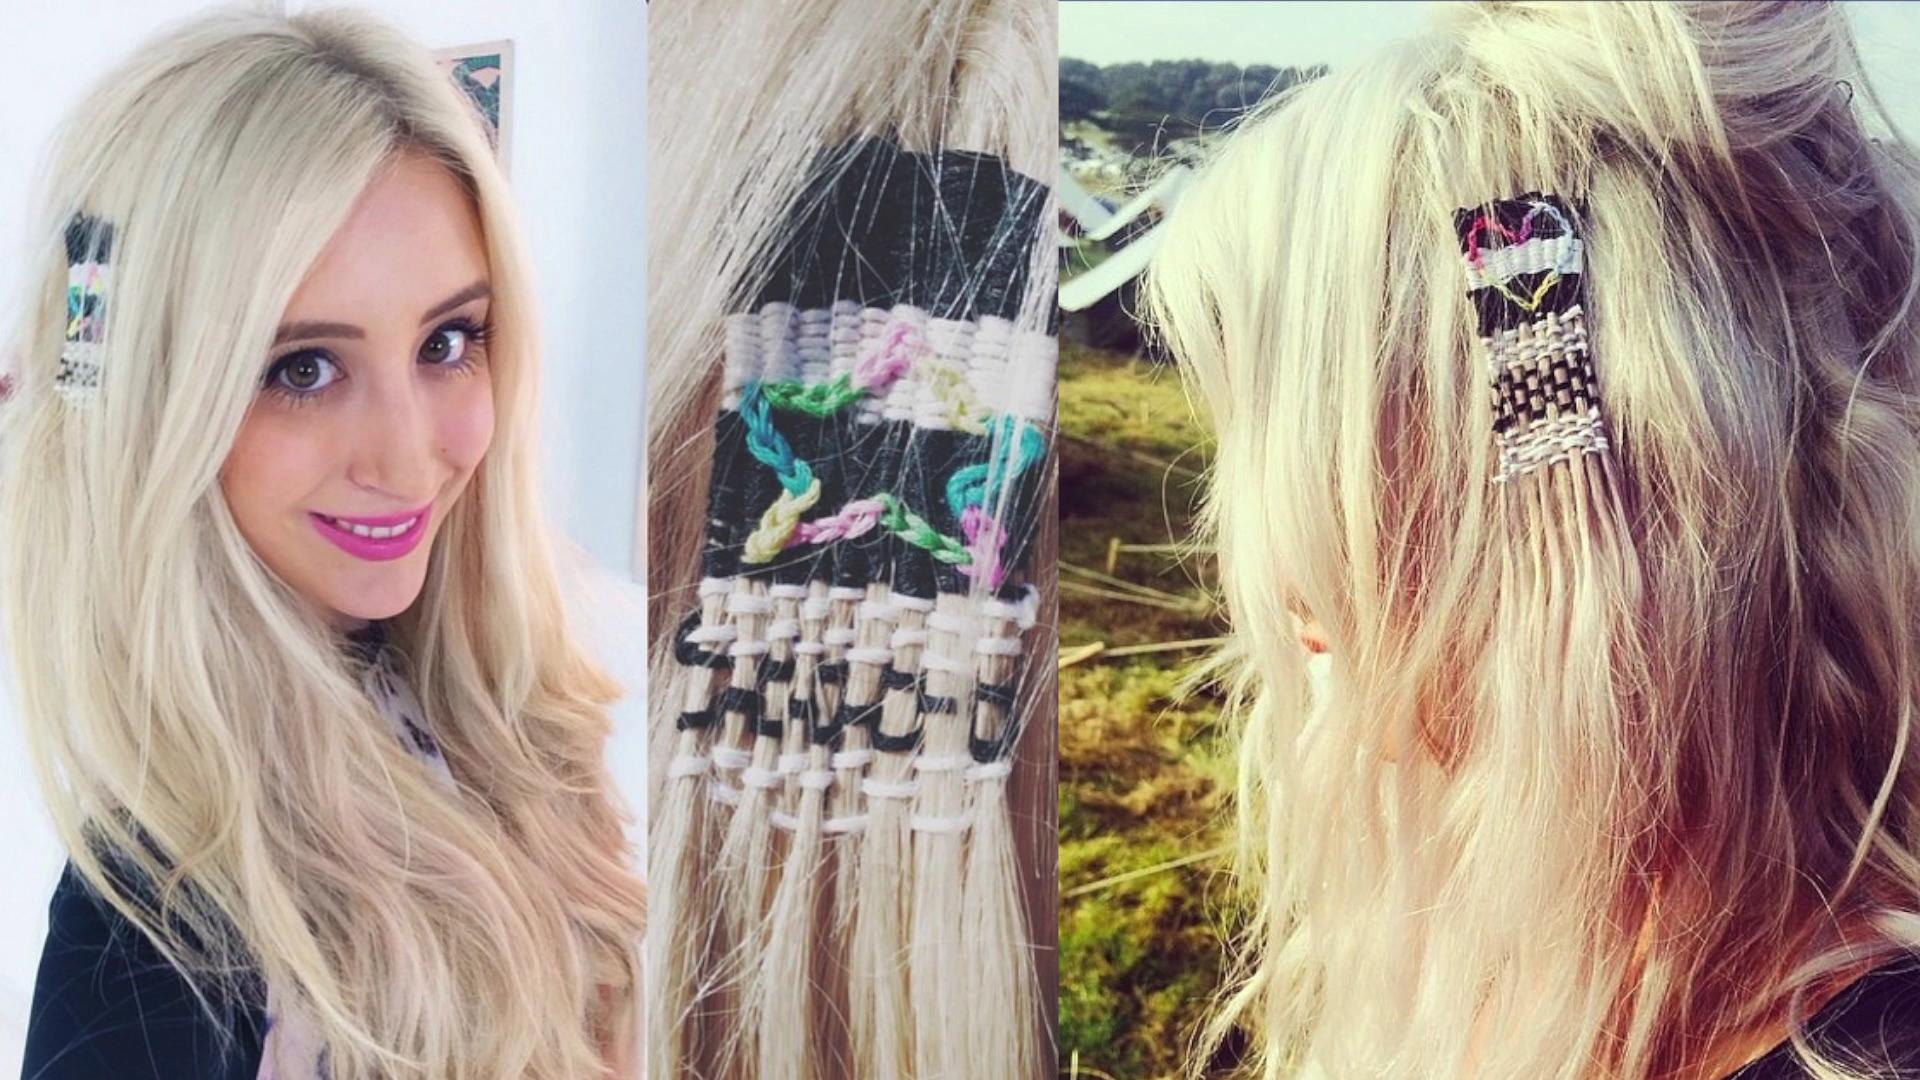 Woven hair takes Instagram by storm